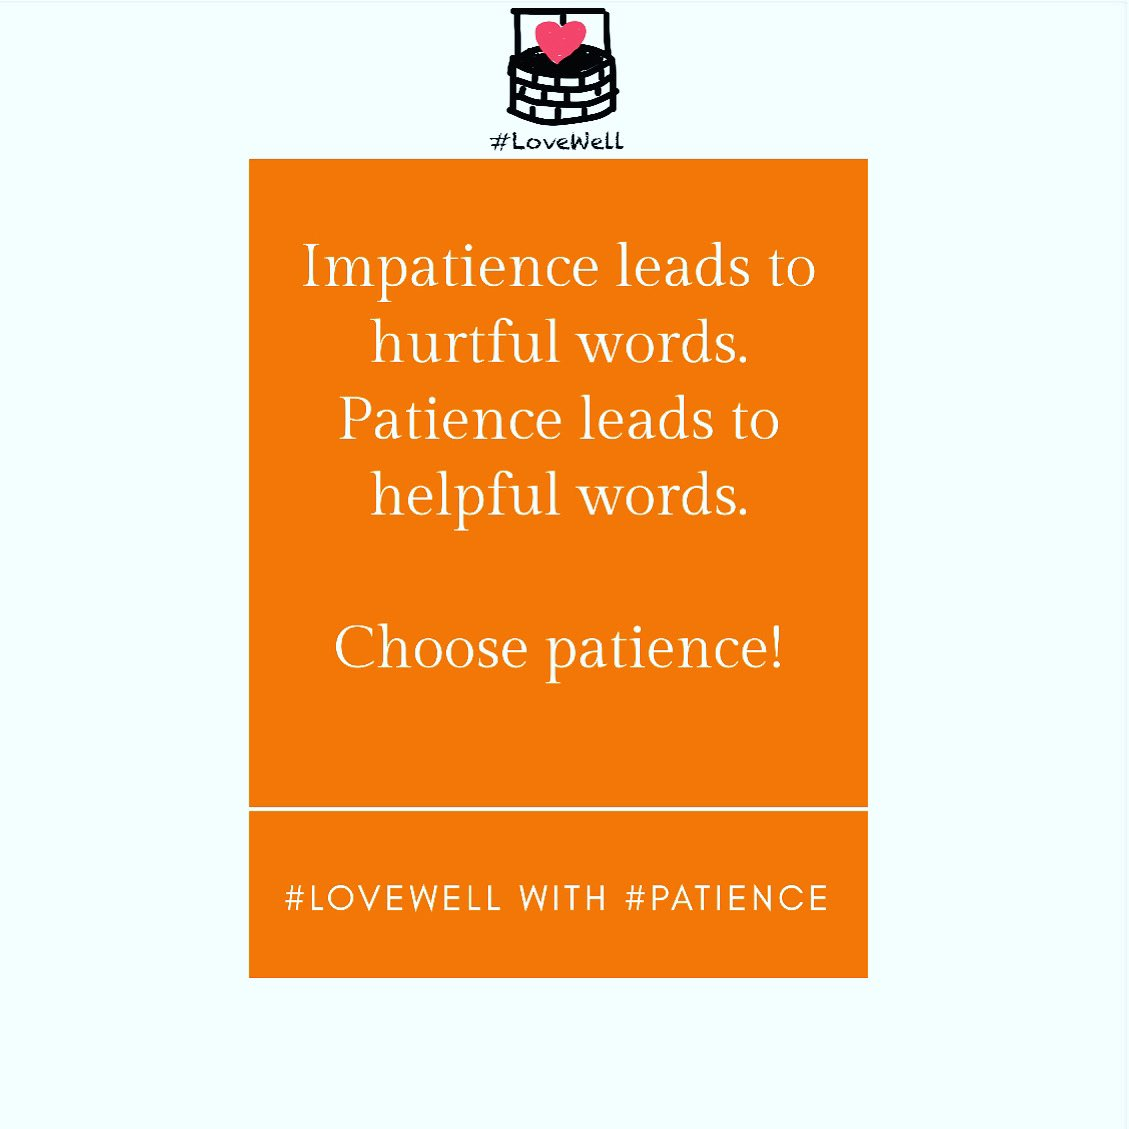 It's #FriendlyFriday. Choose patience through your words. #LoveWell